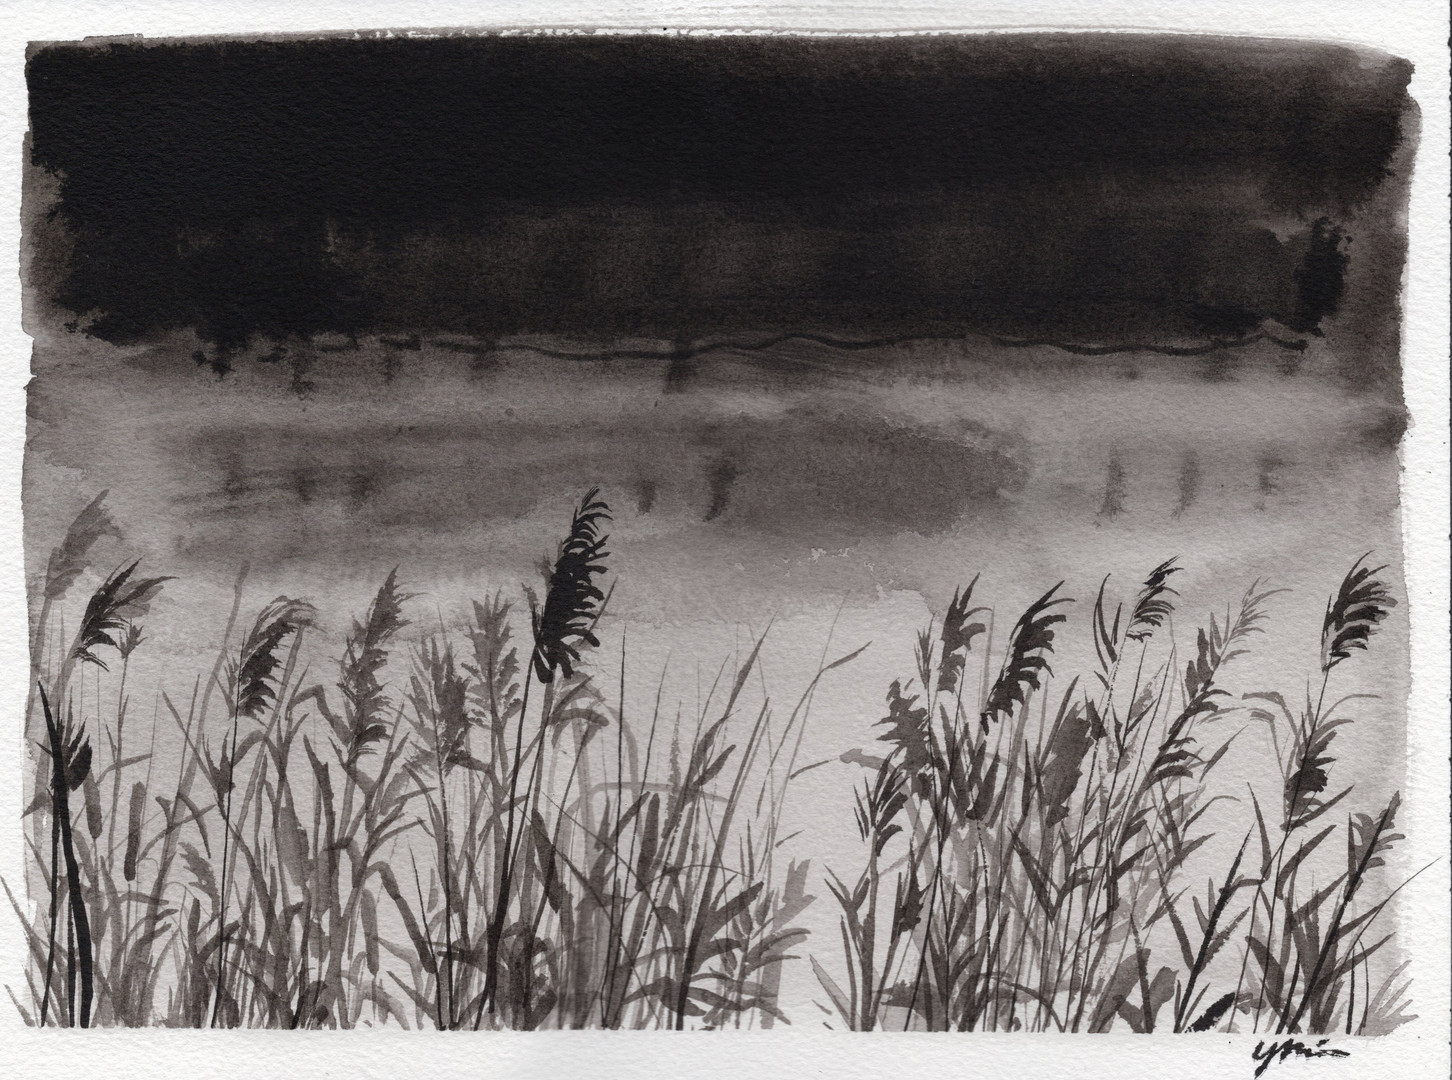 Reeds on the Water